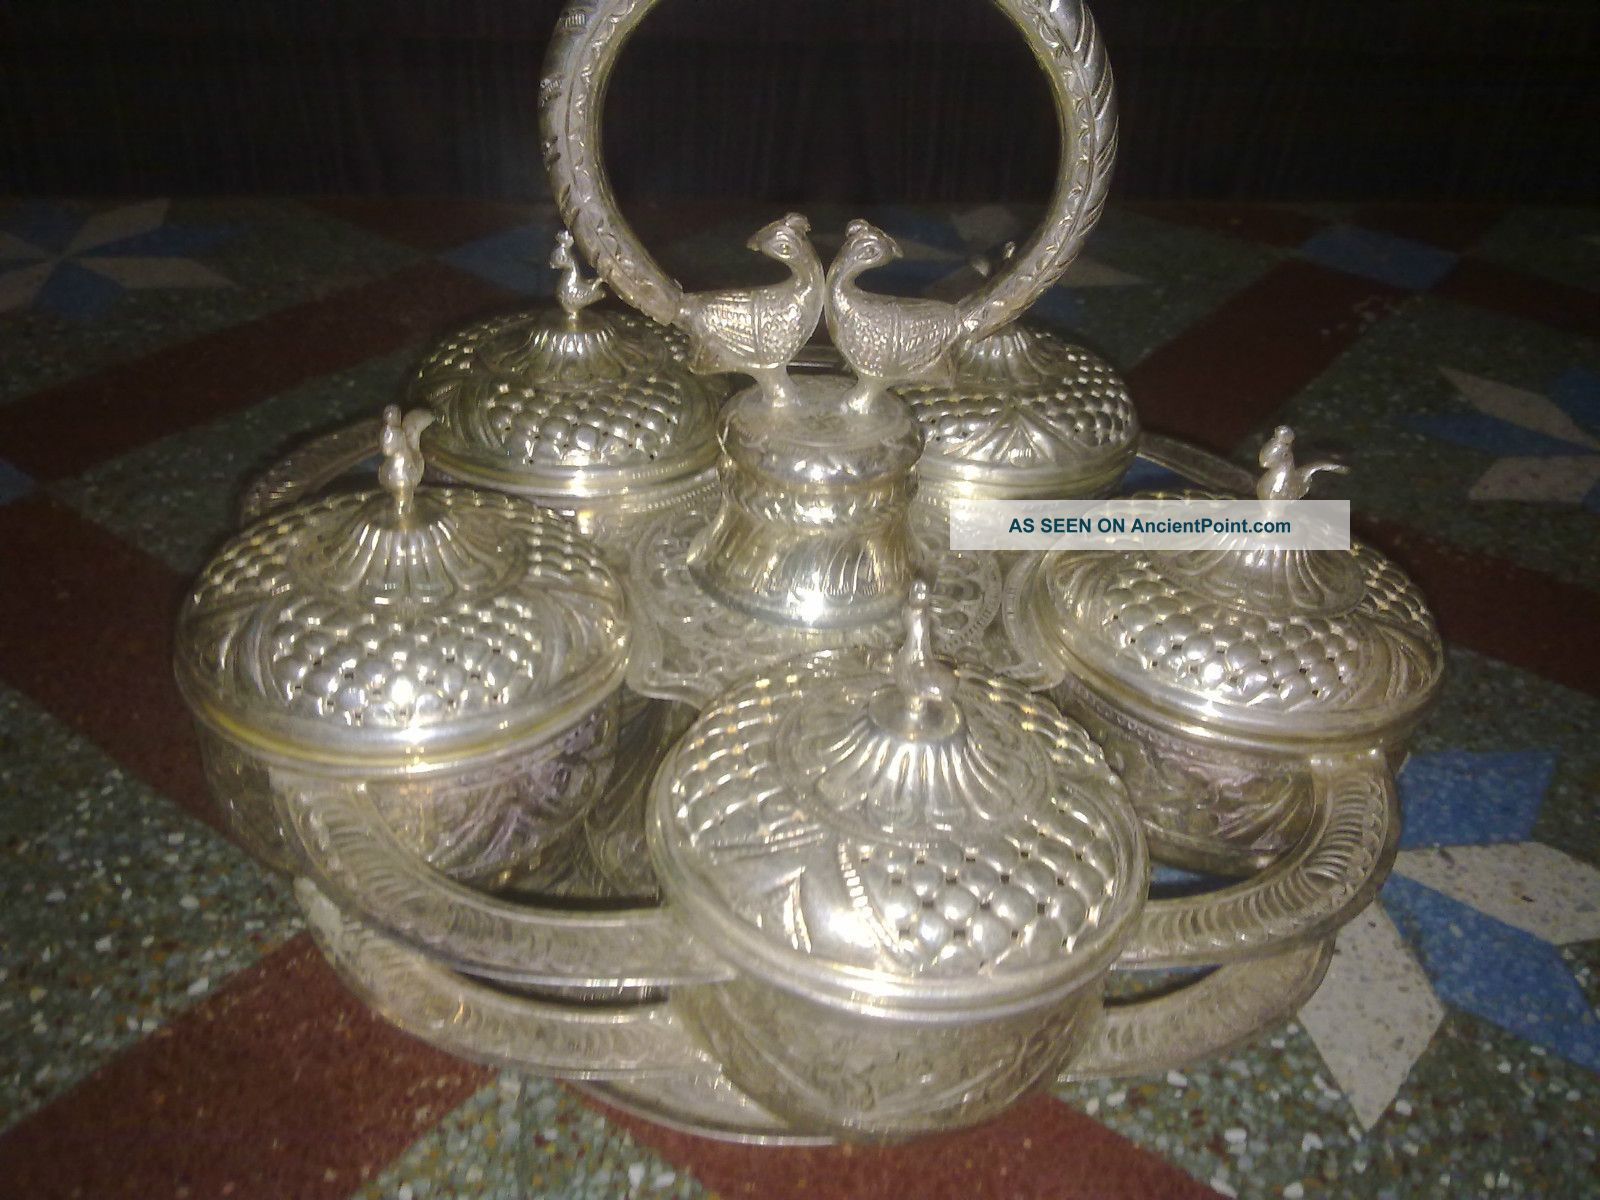 Silver Antiques Totaly Made Of Fine Silver Having 30 Year Period By Hand Other photo